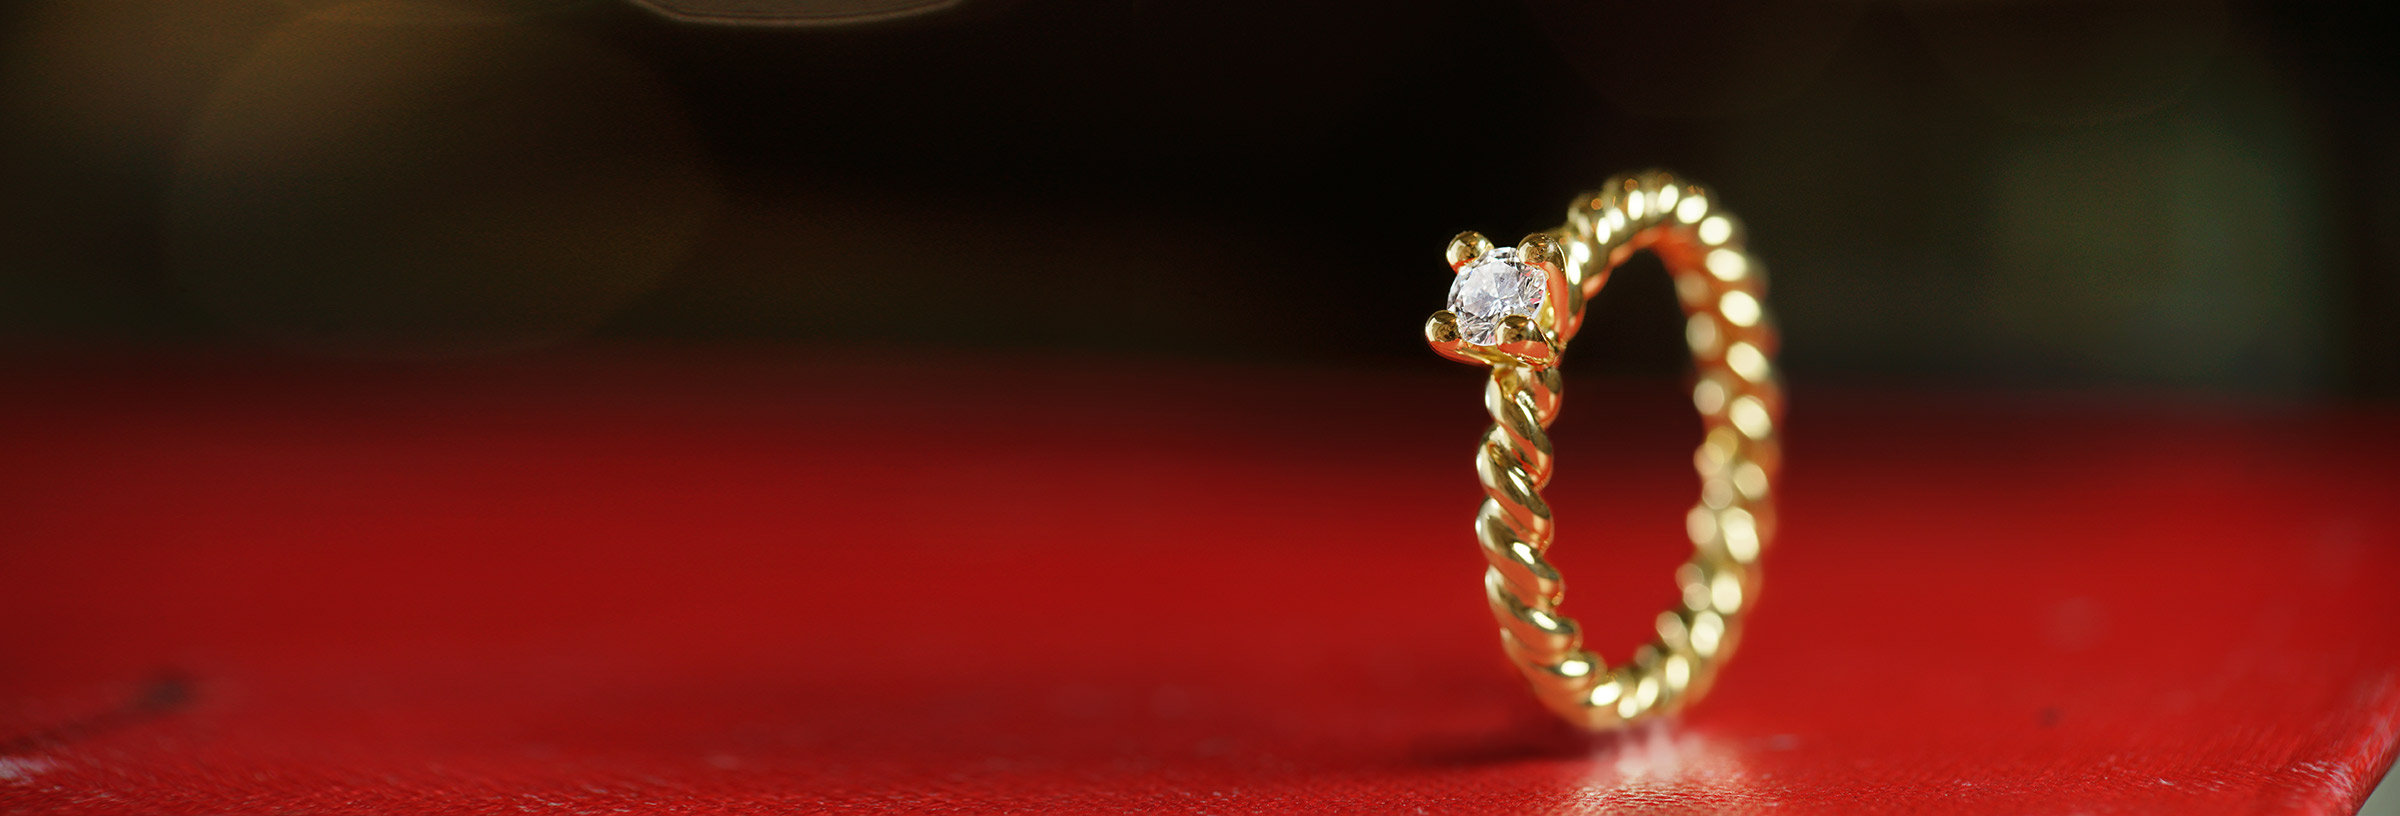 yellow-gold-twisting-band-solitaire-diamond-engagement-ring